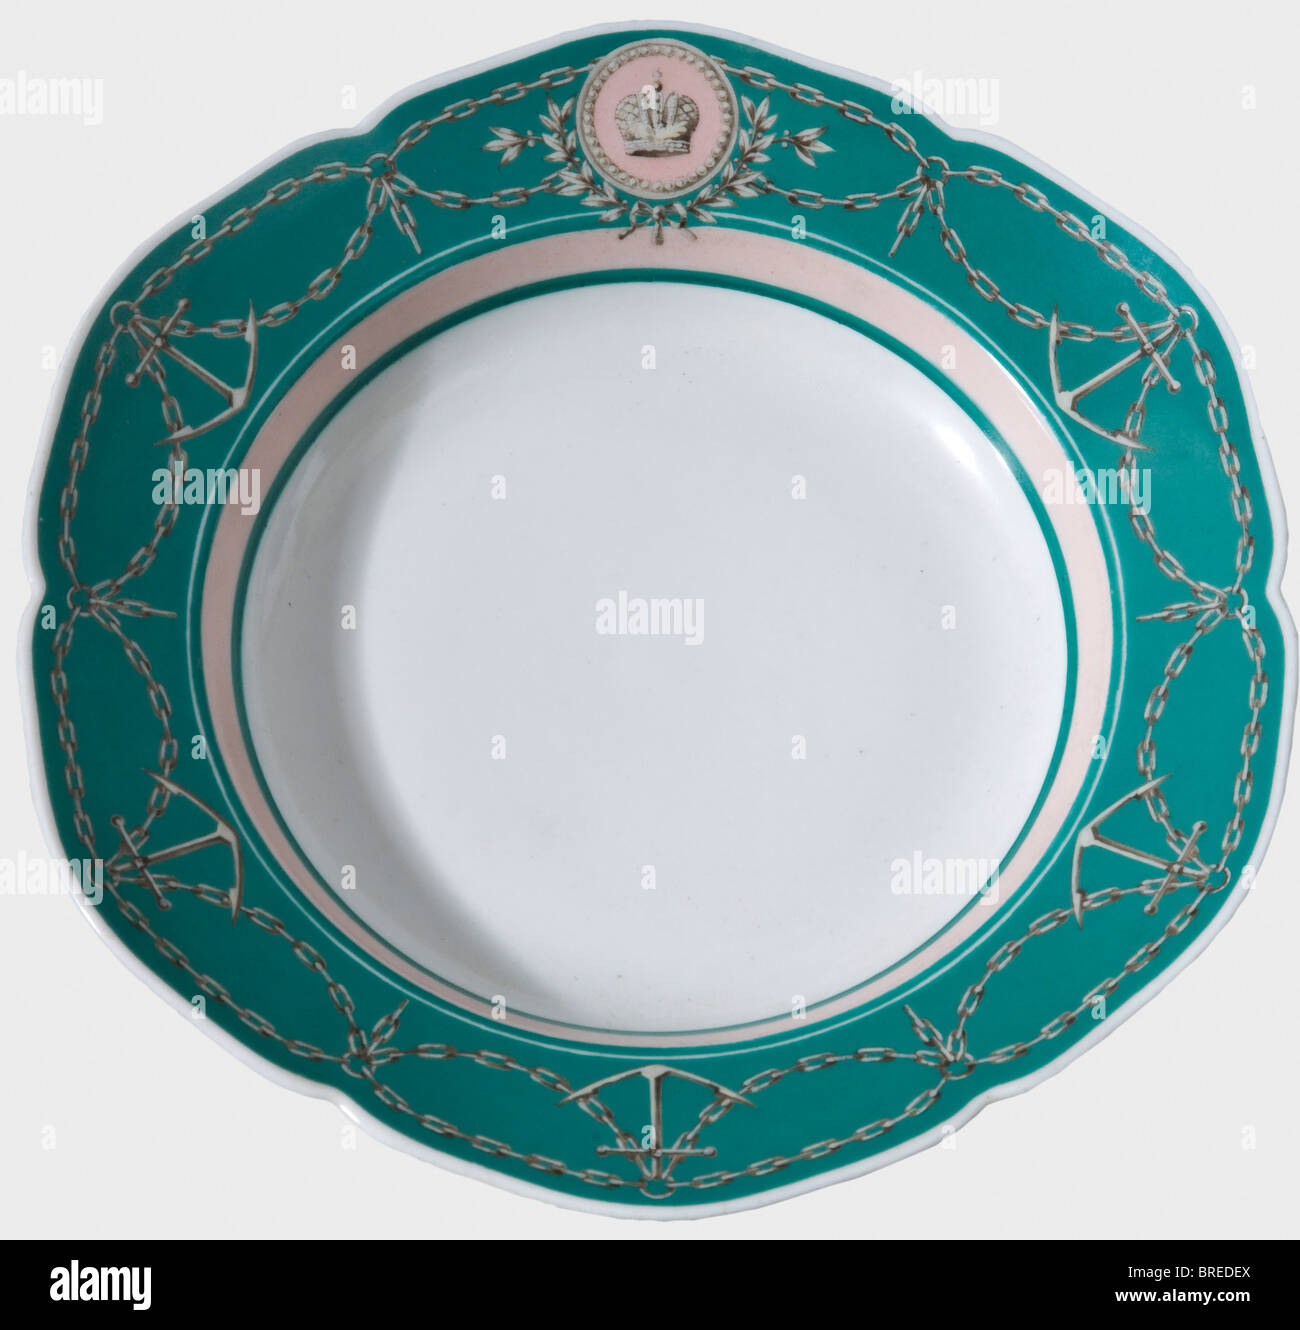 A soup plate from Tsar Alexander II's yacht service, Imperial Russian Porcelain Manufactory St. Petersburg White, - Stock Image